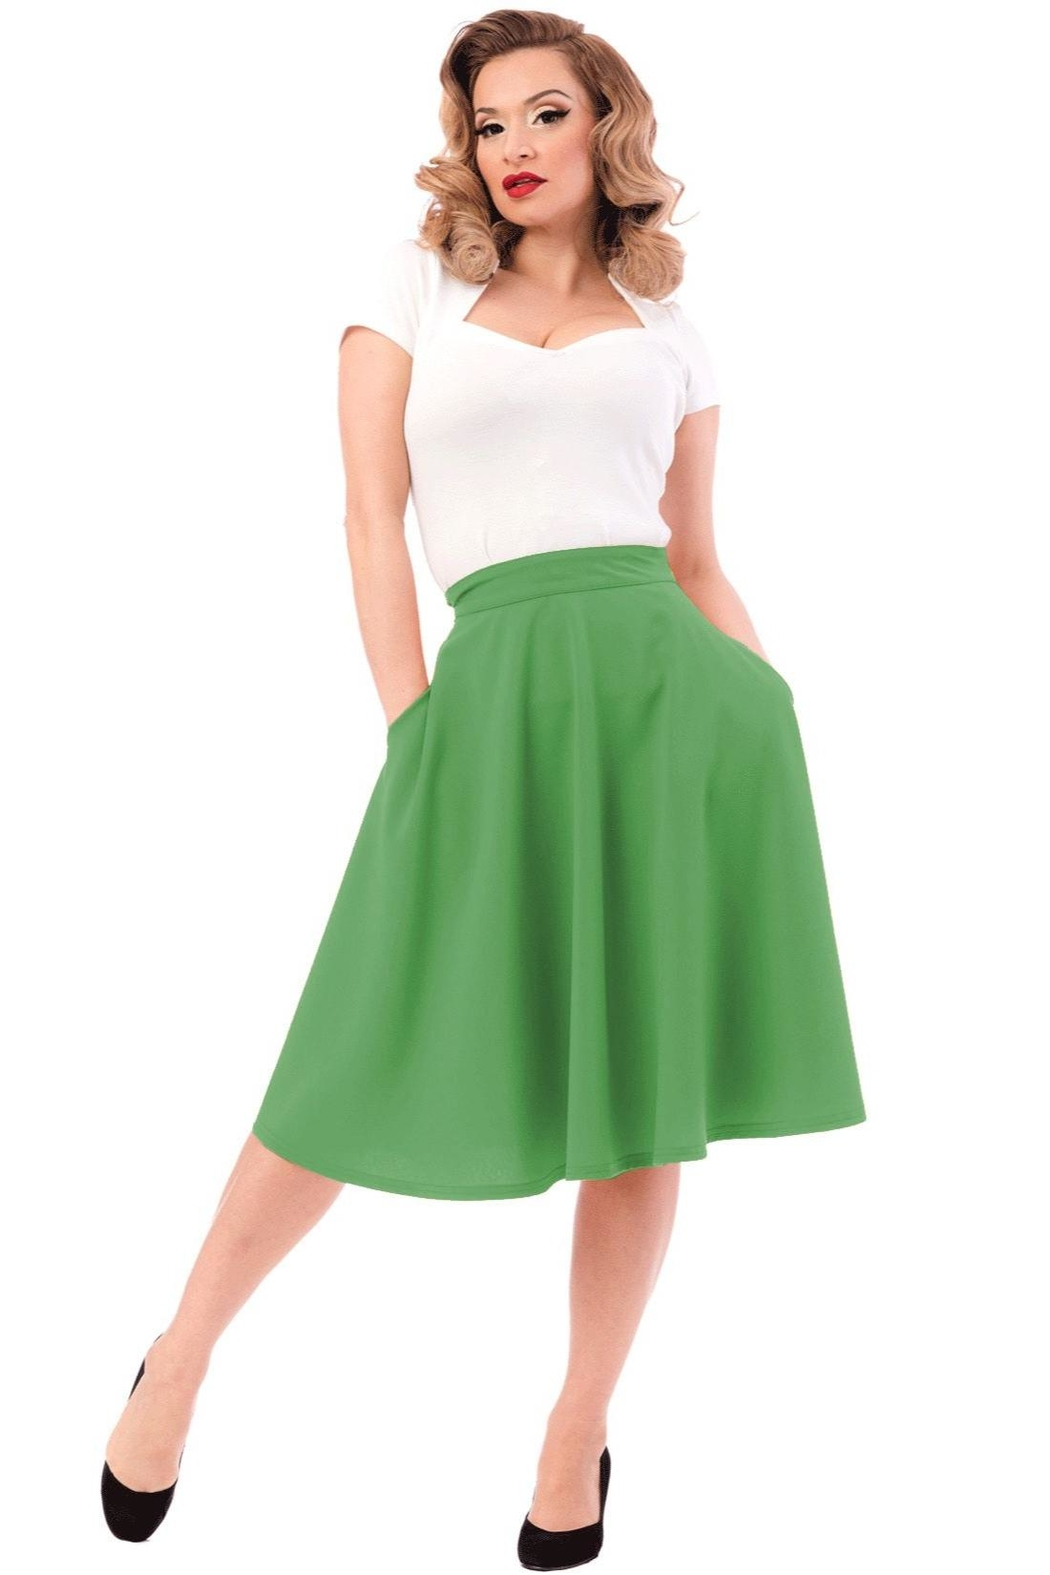 Steady Clothing Pocket Circle Skirt - Main Image